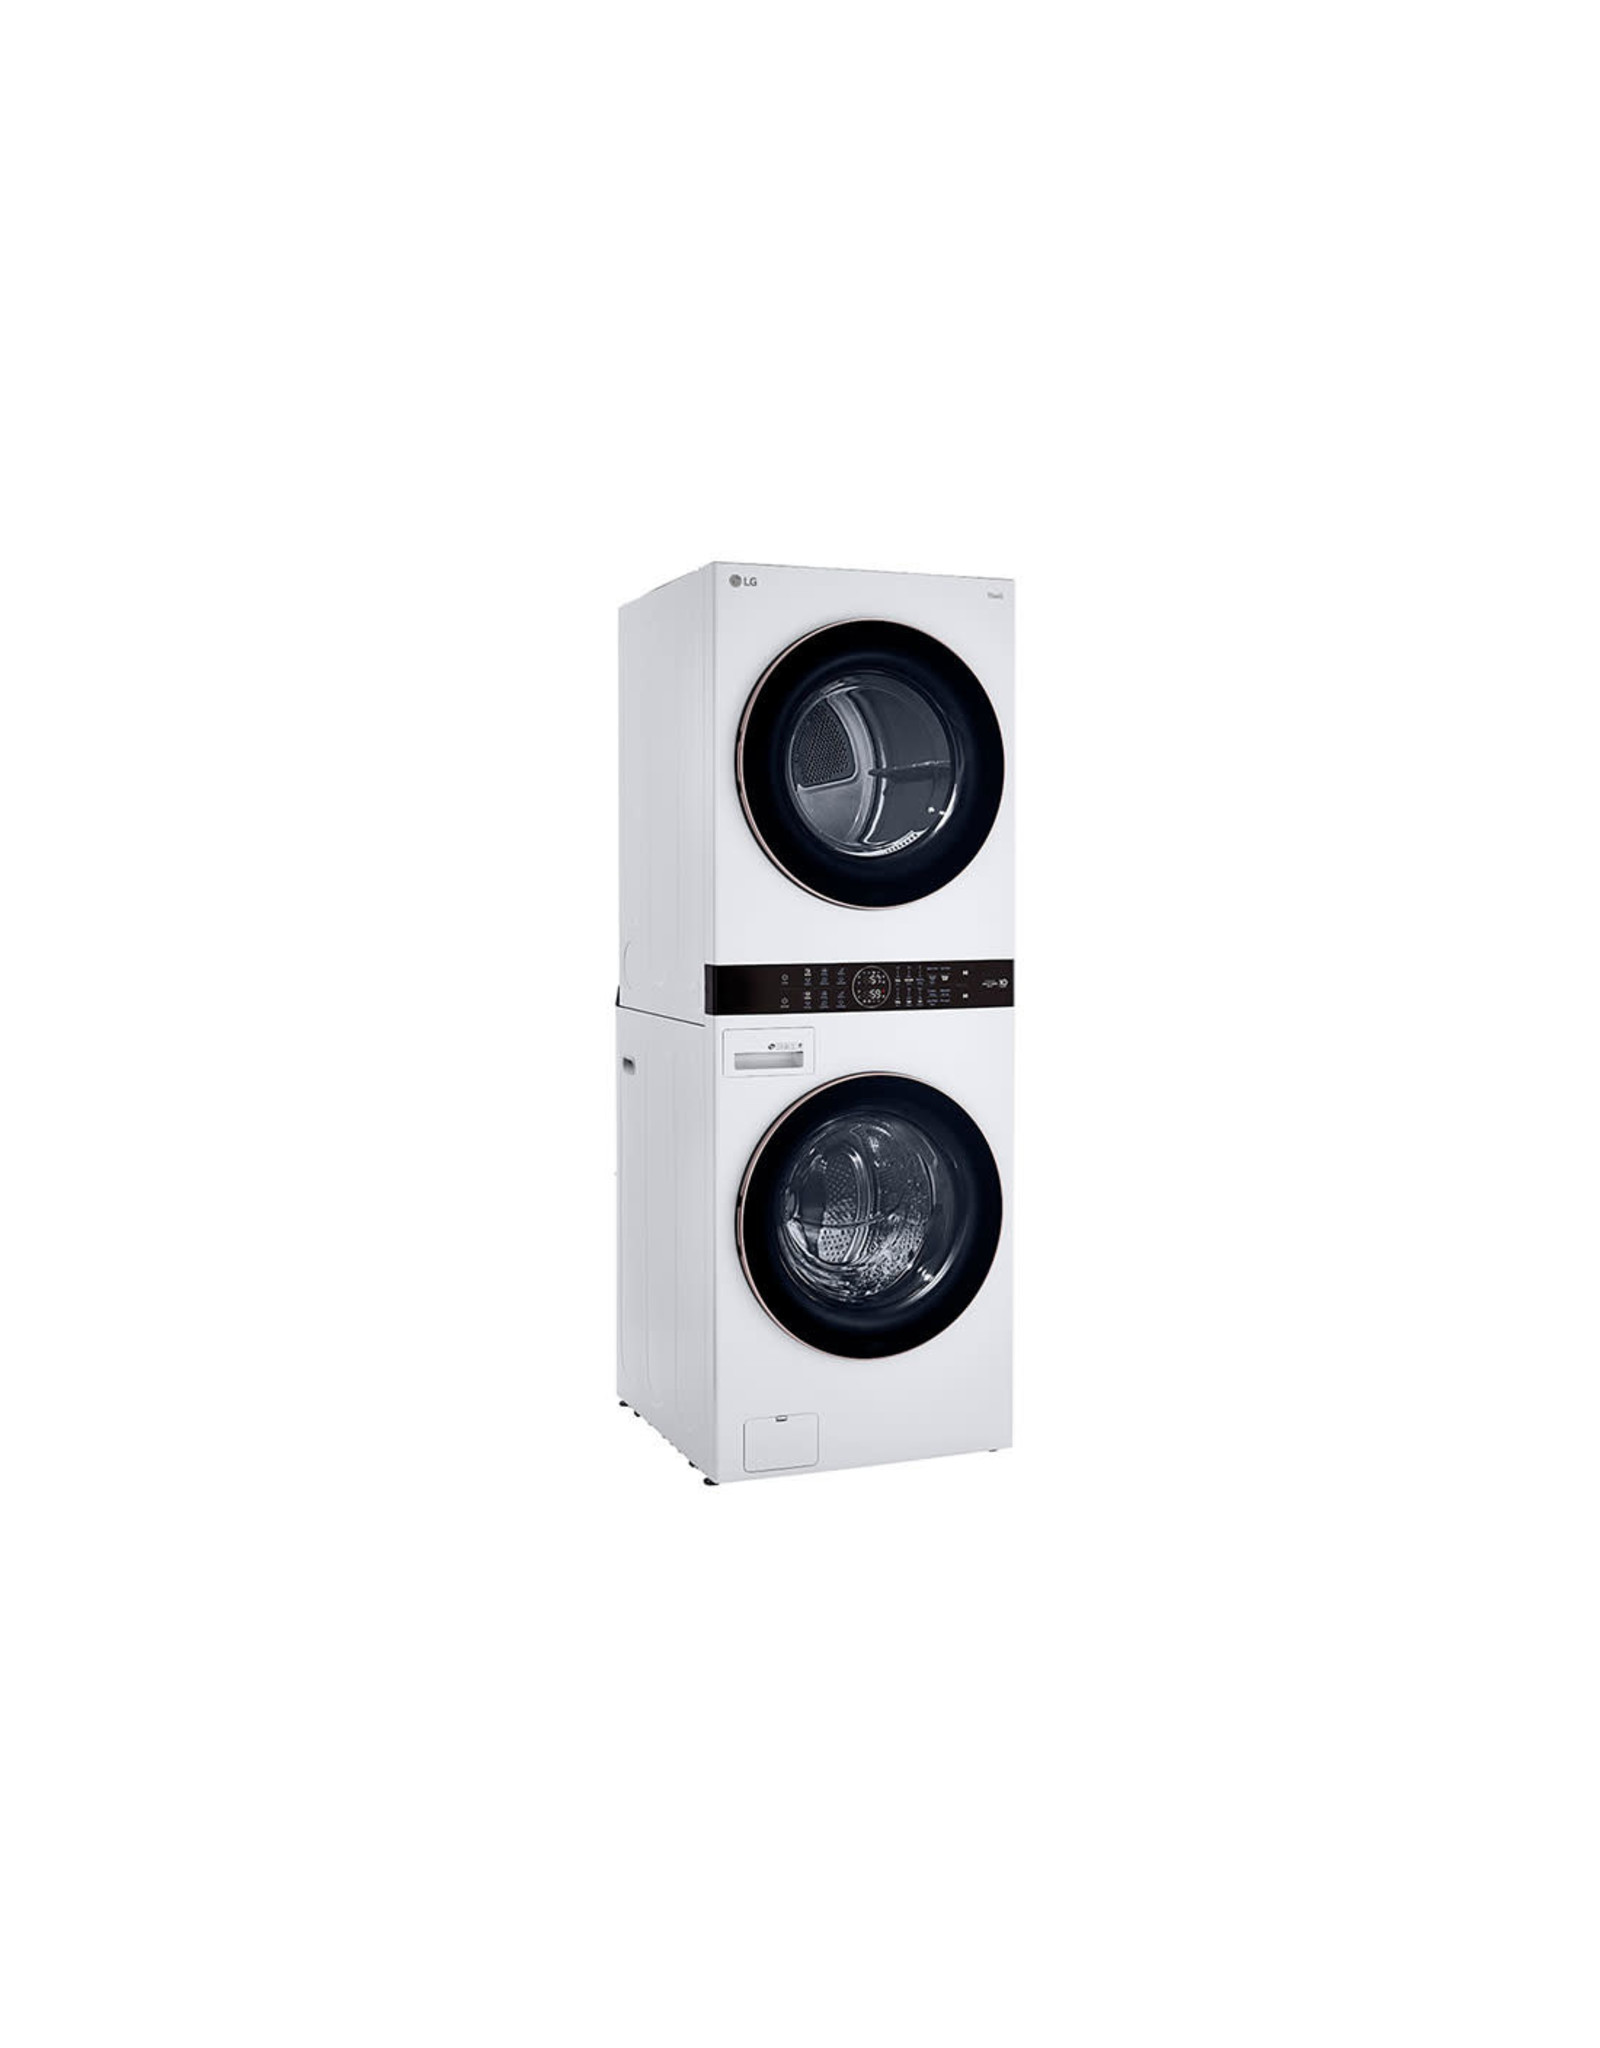 LG Electronics WKE100HWA Single Unit Front Load LG WashTower™ with Center Control™ 4.5 cu. ft. Washer and 7.4 cu. ft. Electric Dryer